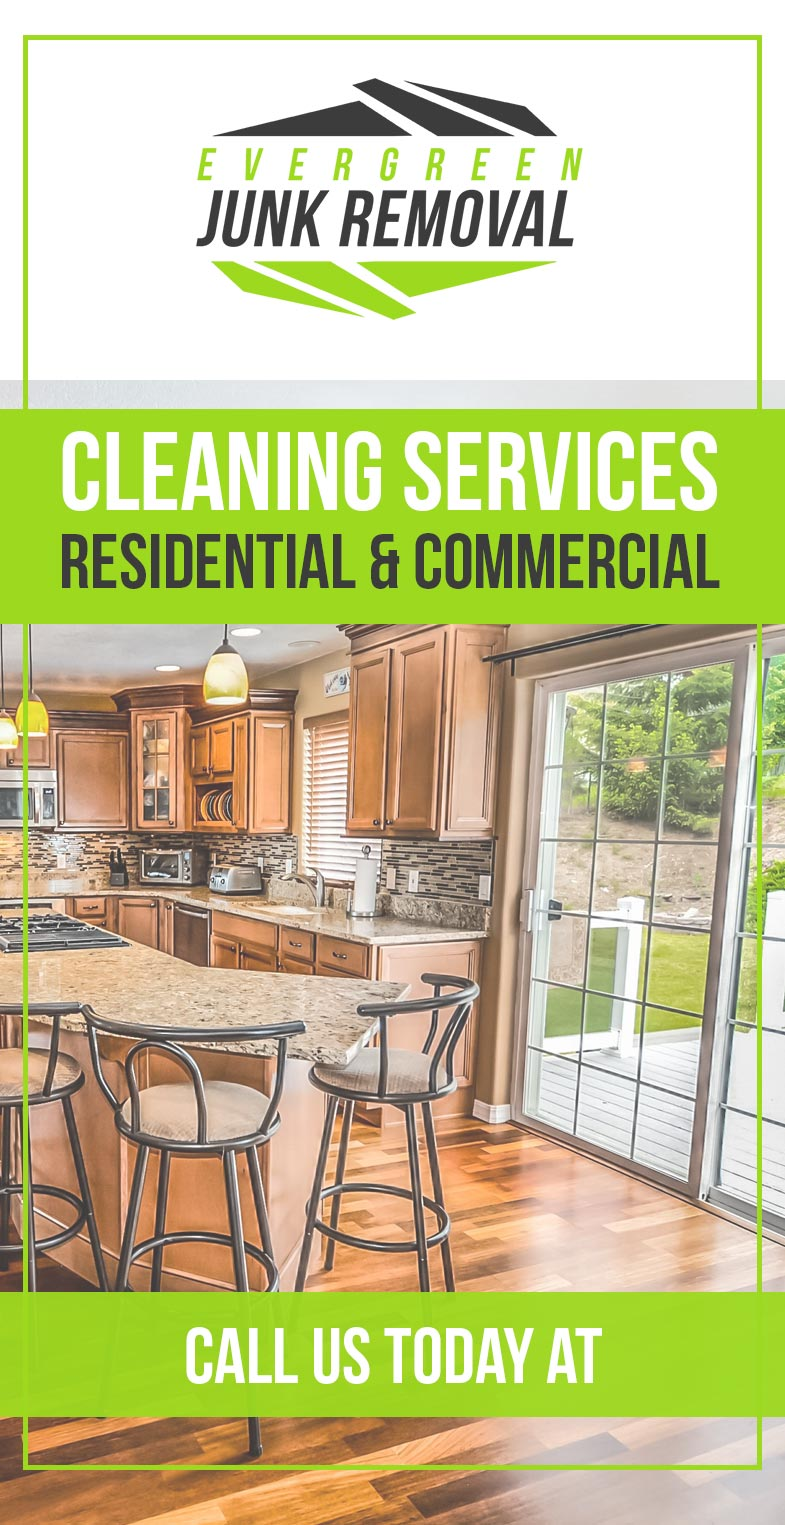 Glen Ridge Maid Services